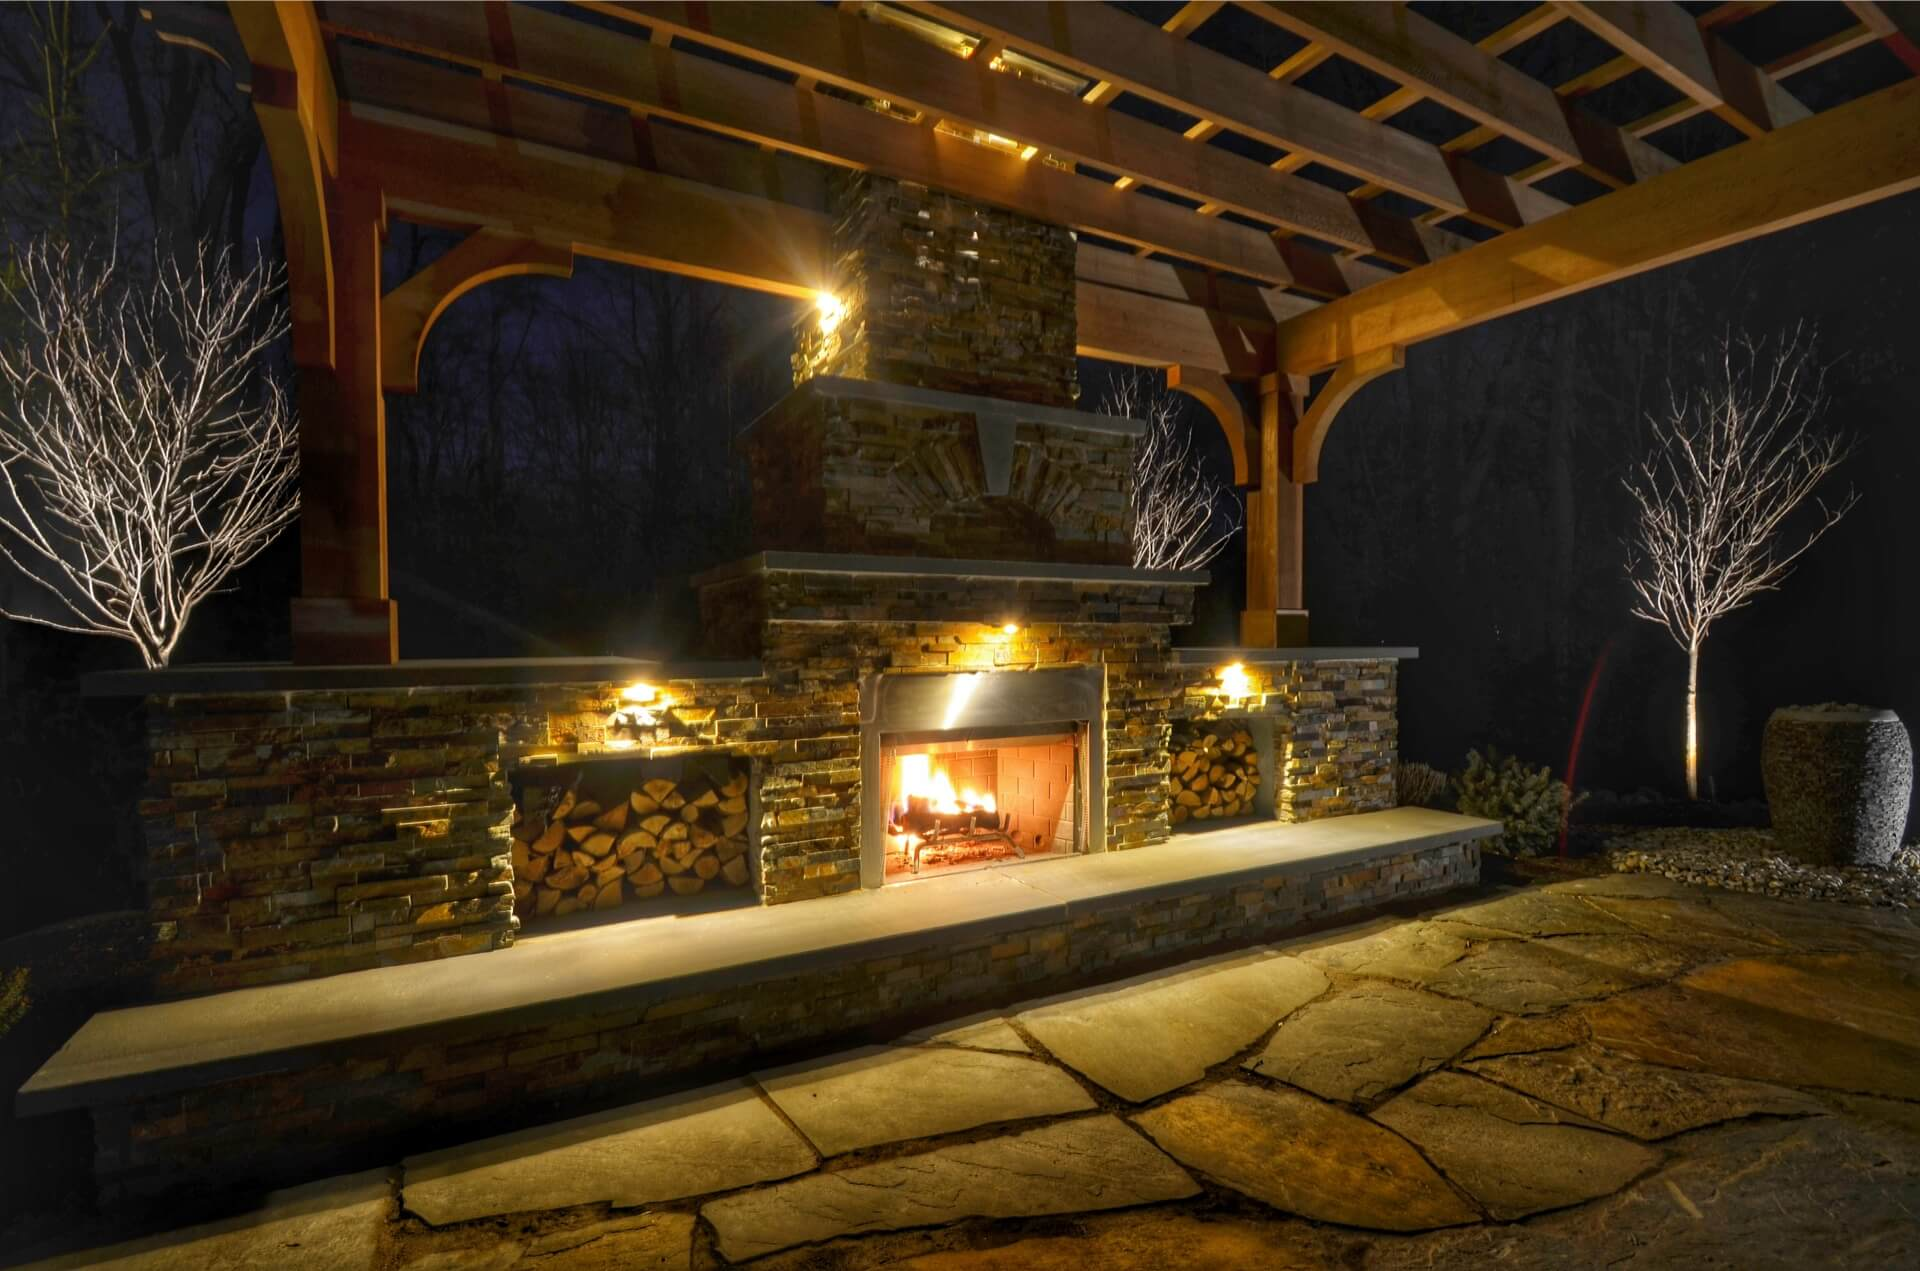 Pergola Patio with Outdoor Fireplace and Lighting